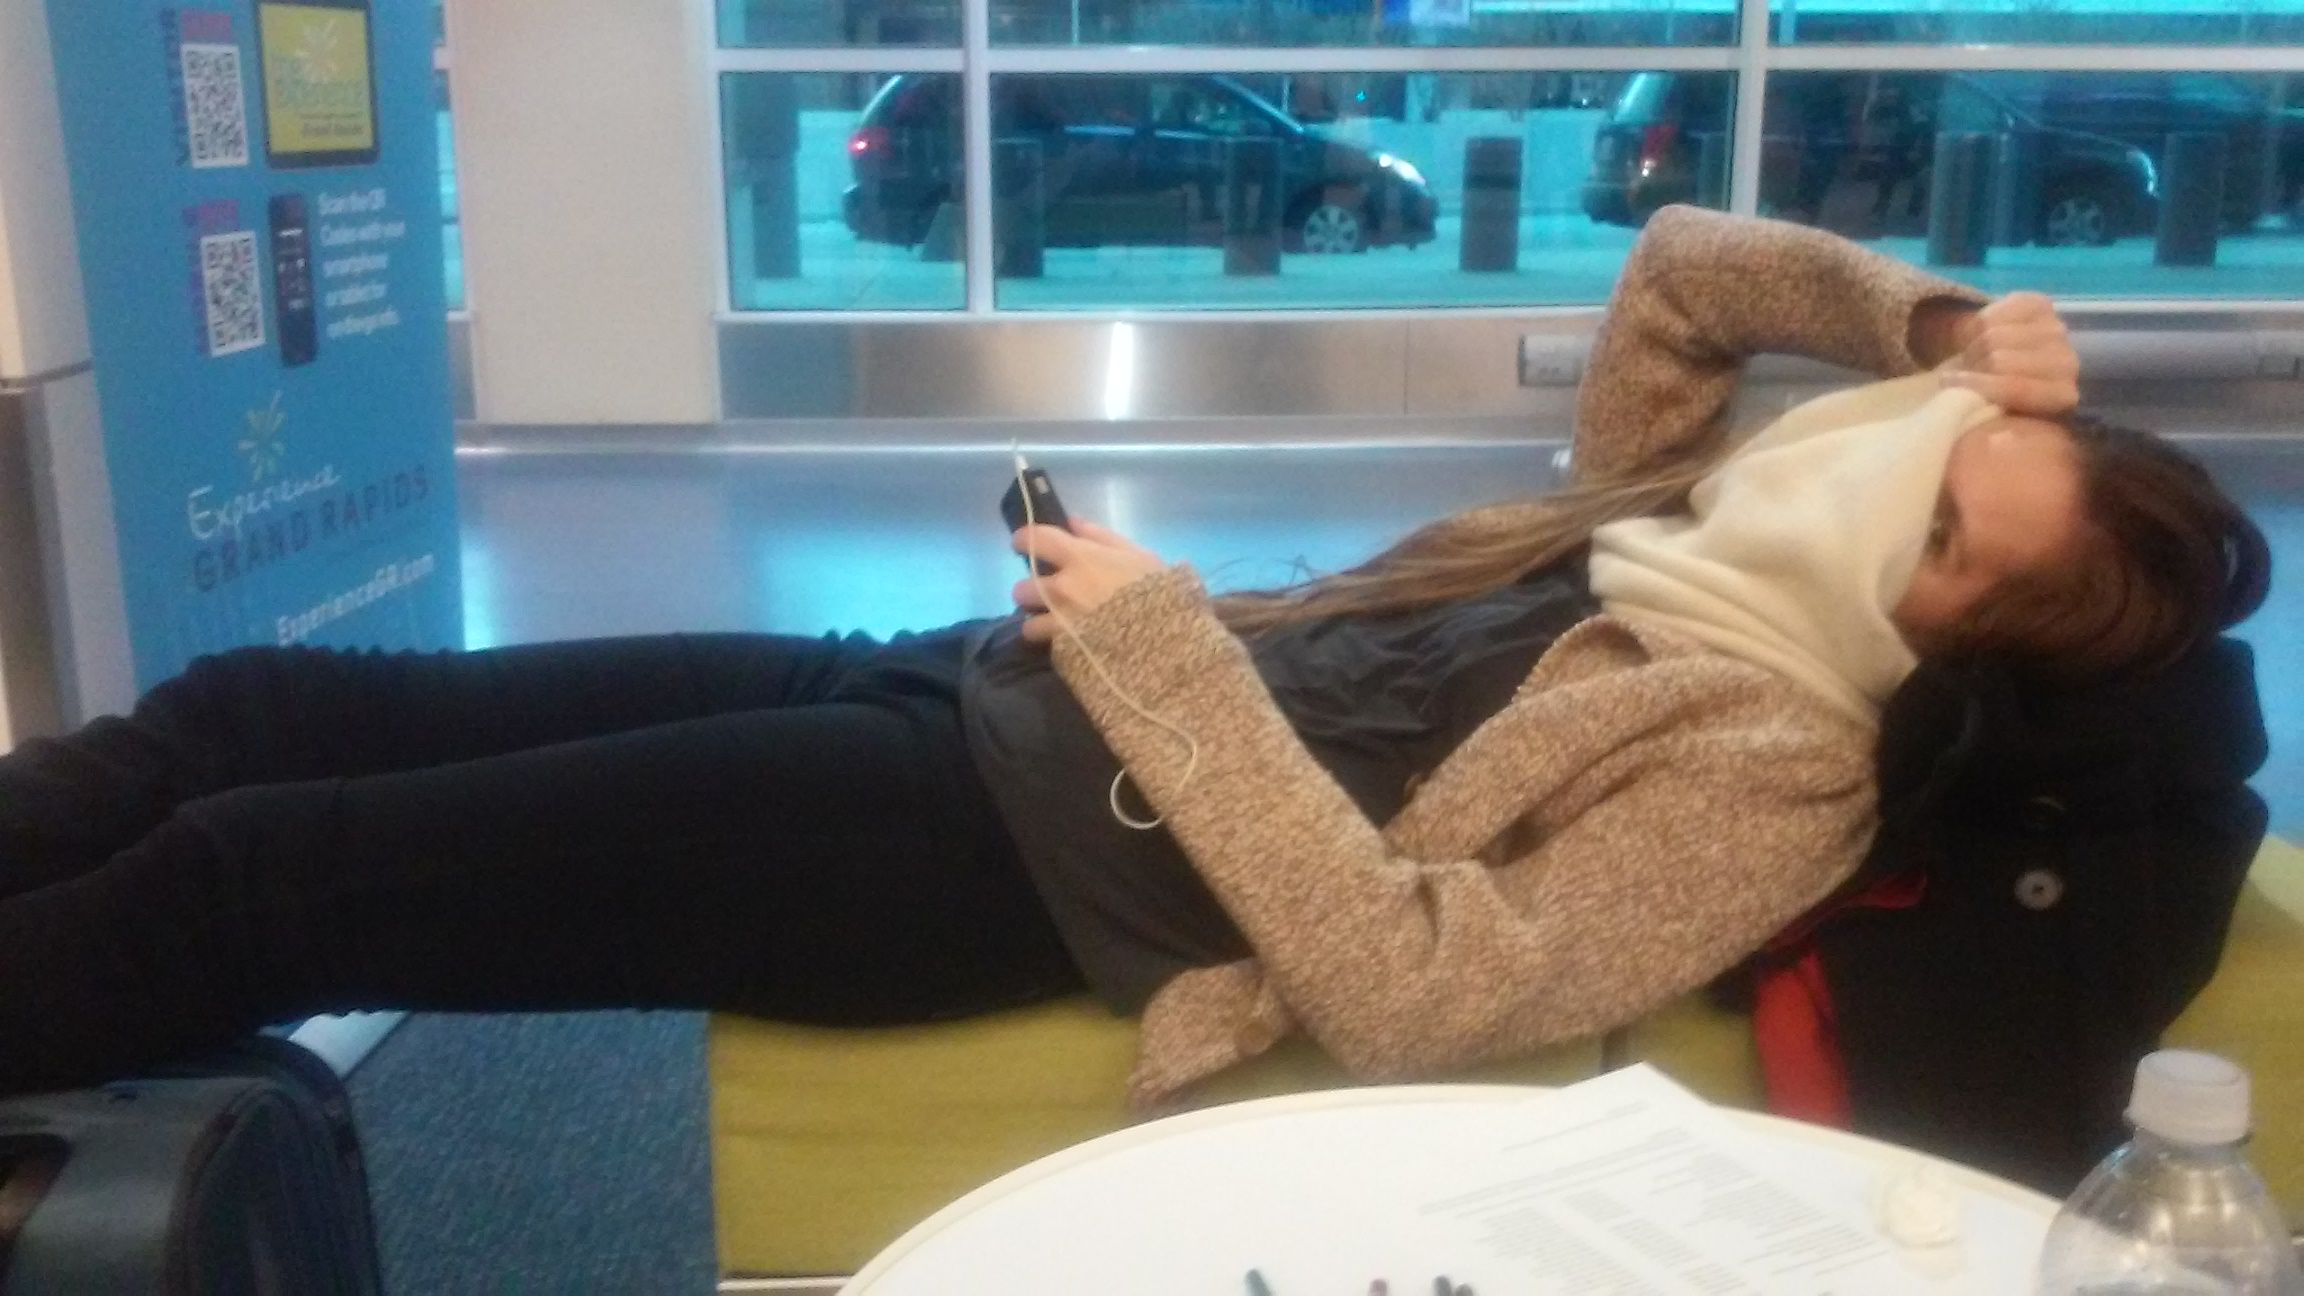 Laura is napping at the airport.